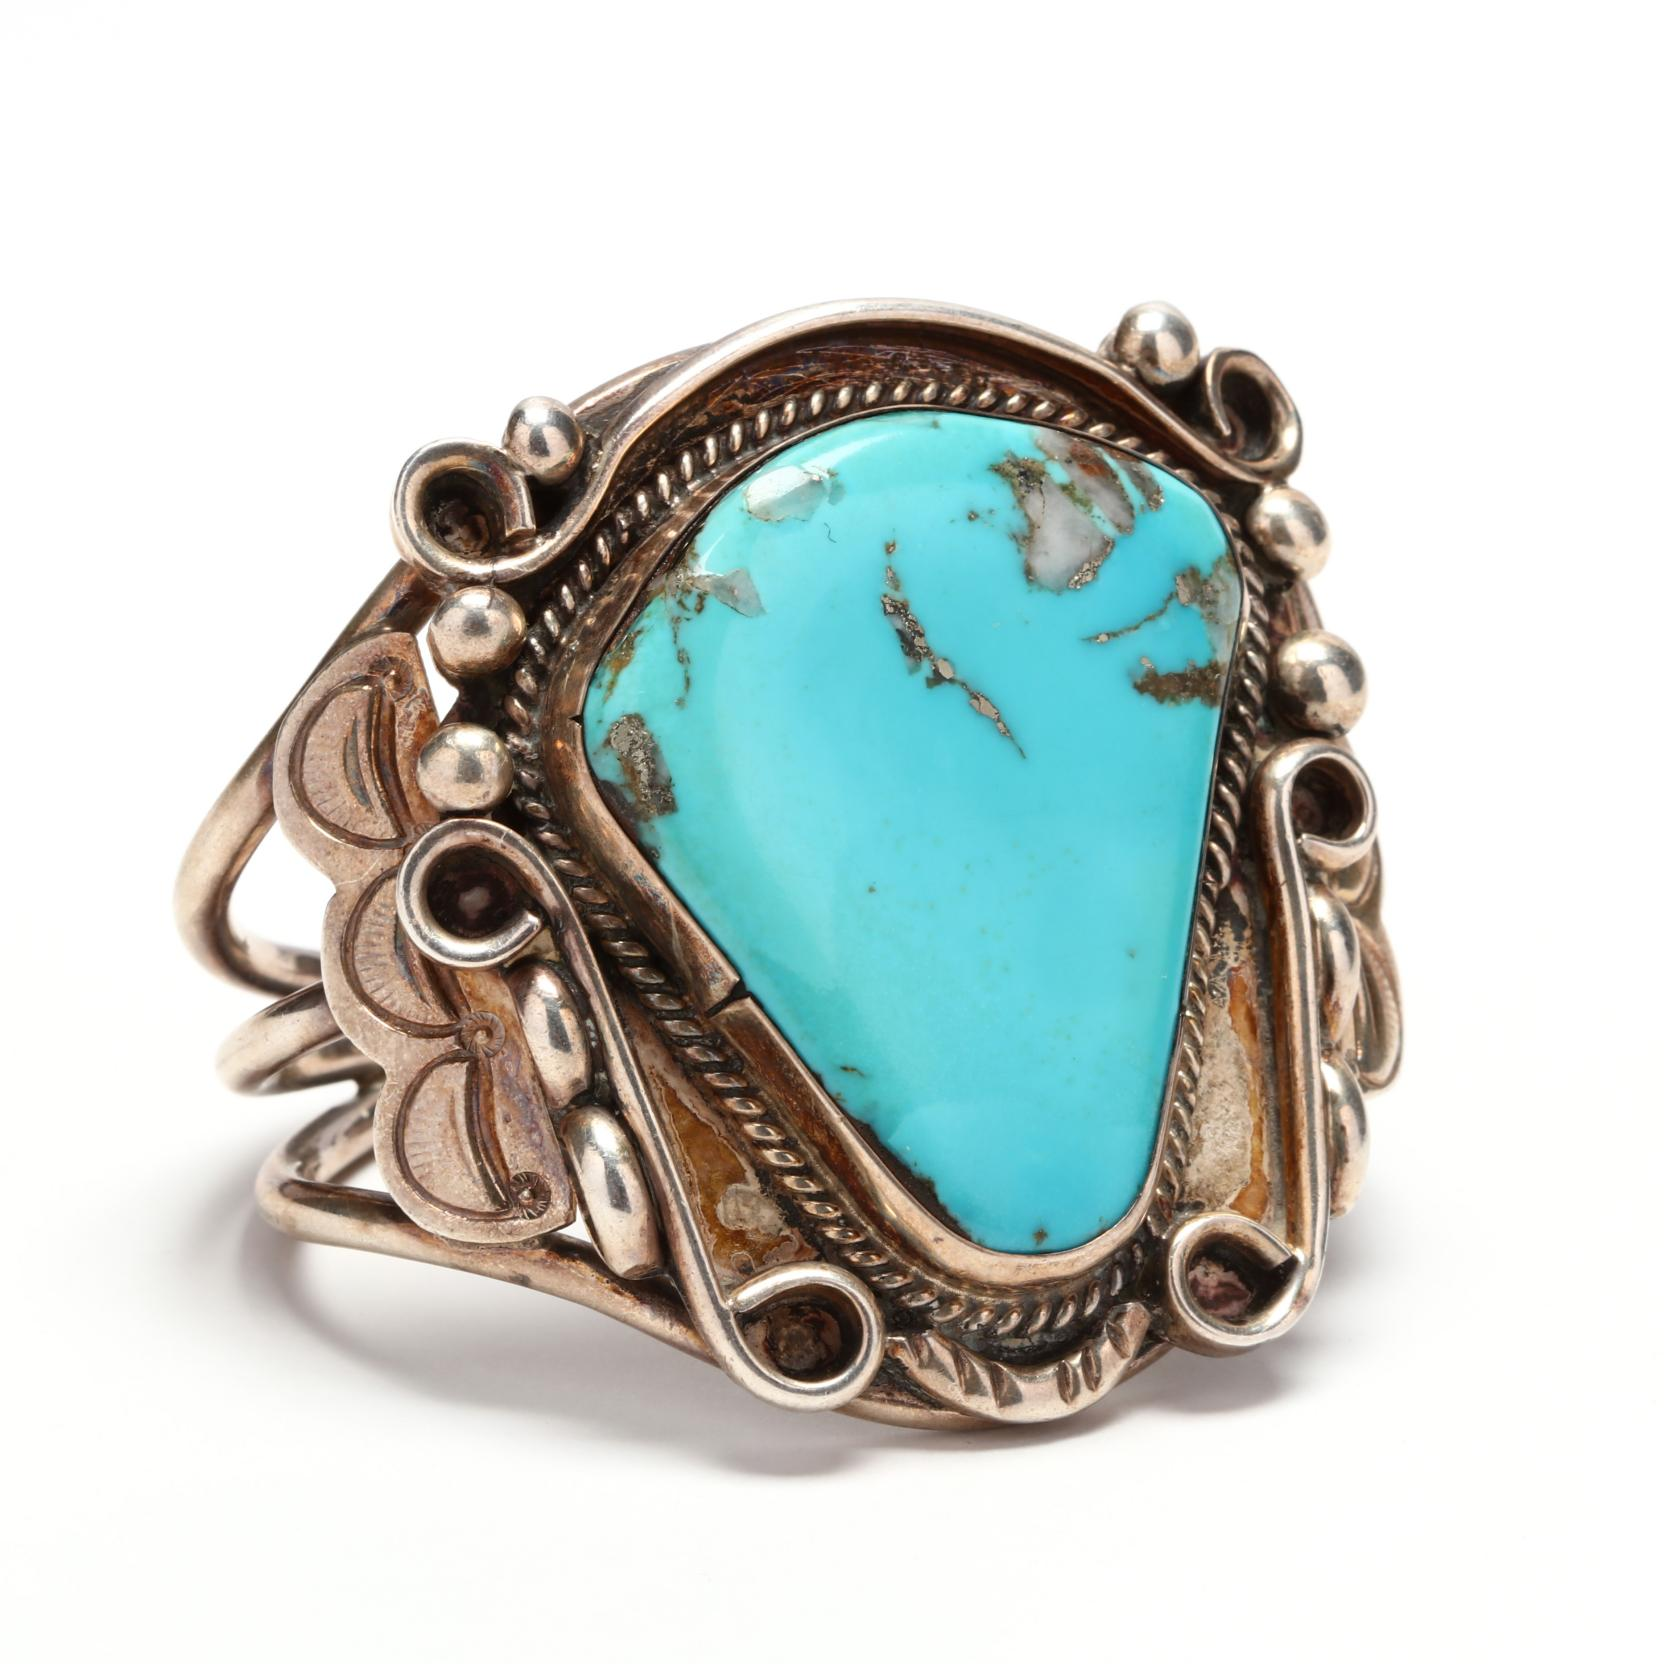 wide-southwestern-silver-and-turquoise-cuff-bracelet